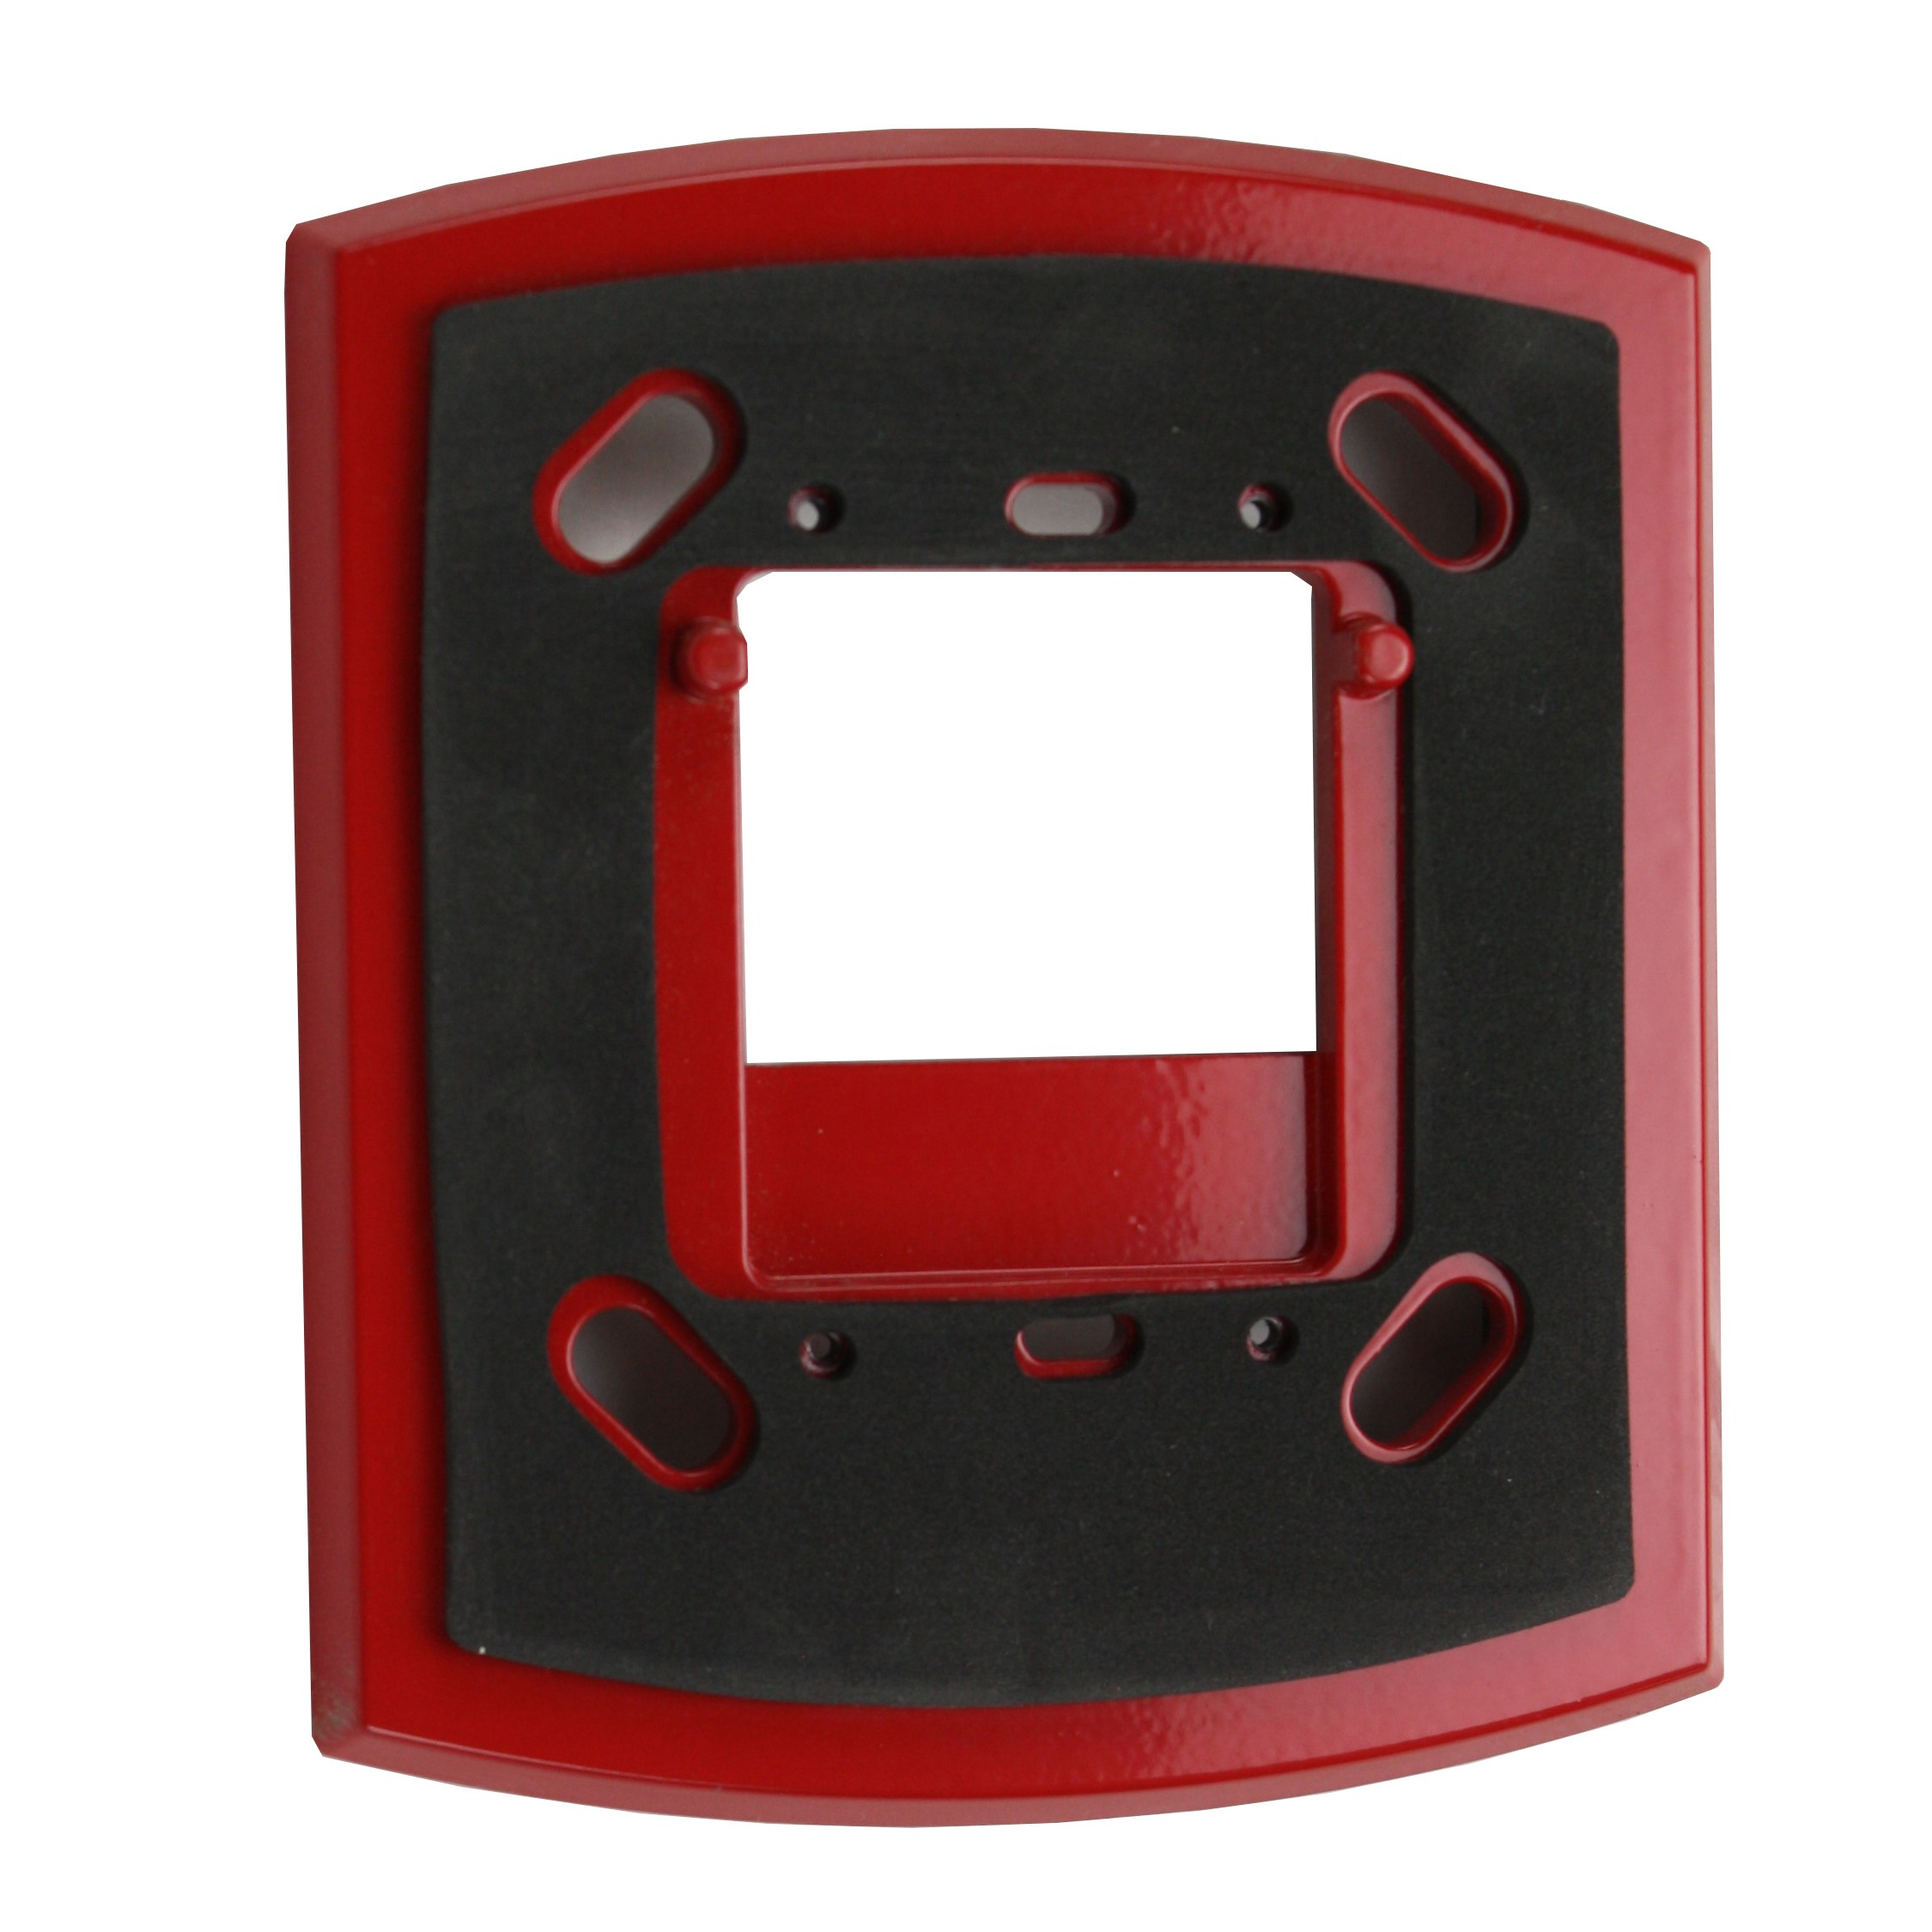 Sensor Mounting Systems : System sensor wtp red fire alarm watertight mount mounting